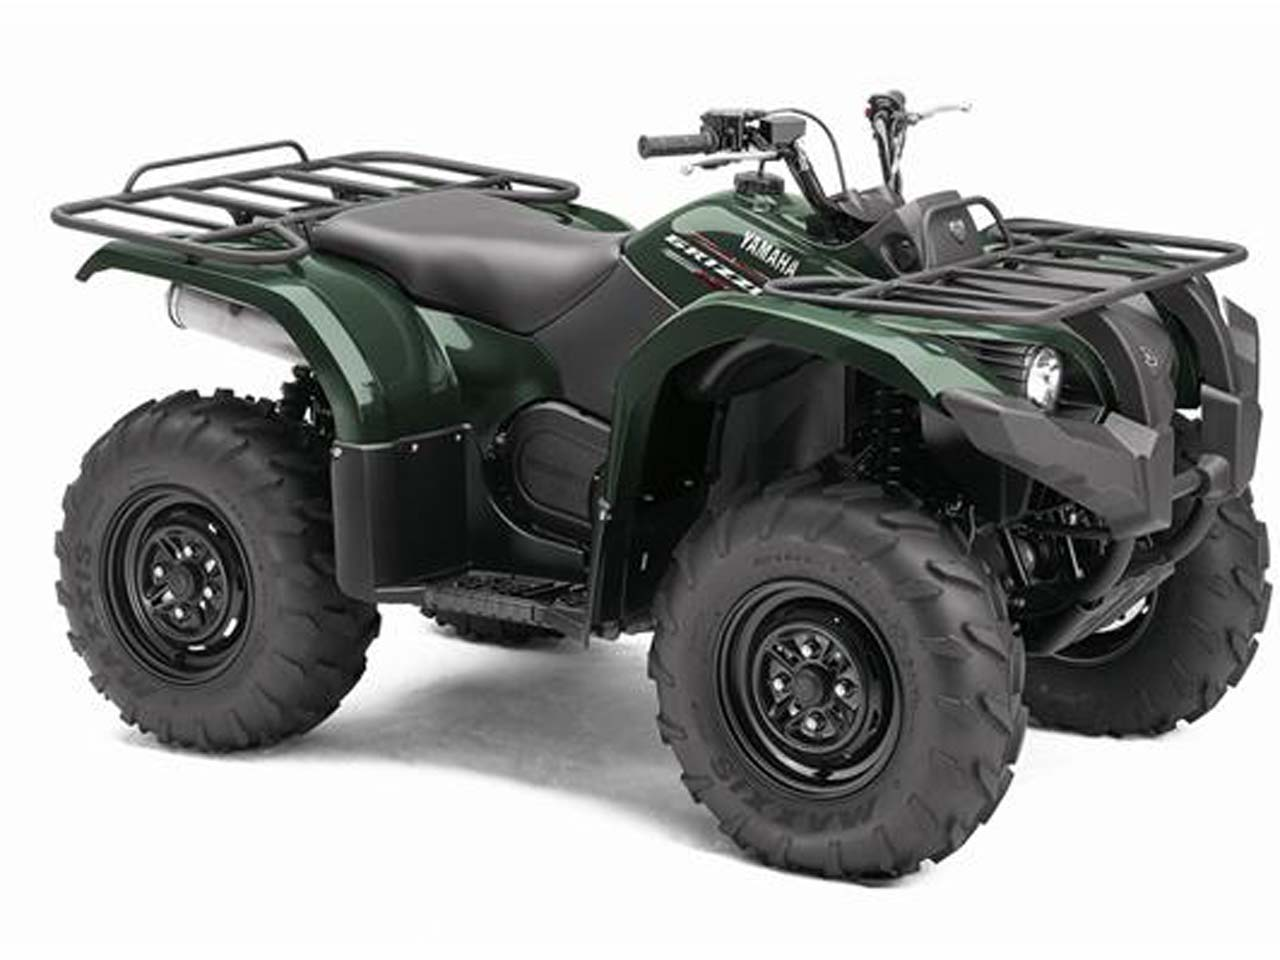 2011 Sweepstakes Winner Receives New Grizzly 450 Auto 4x4